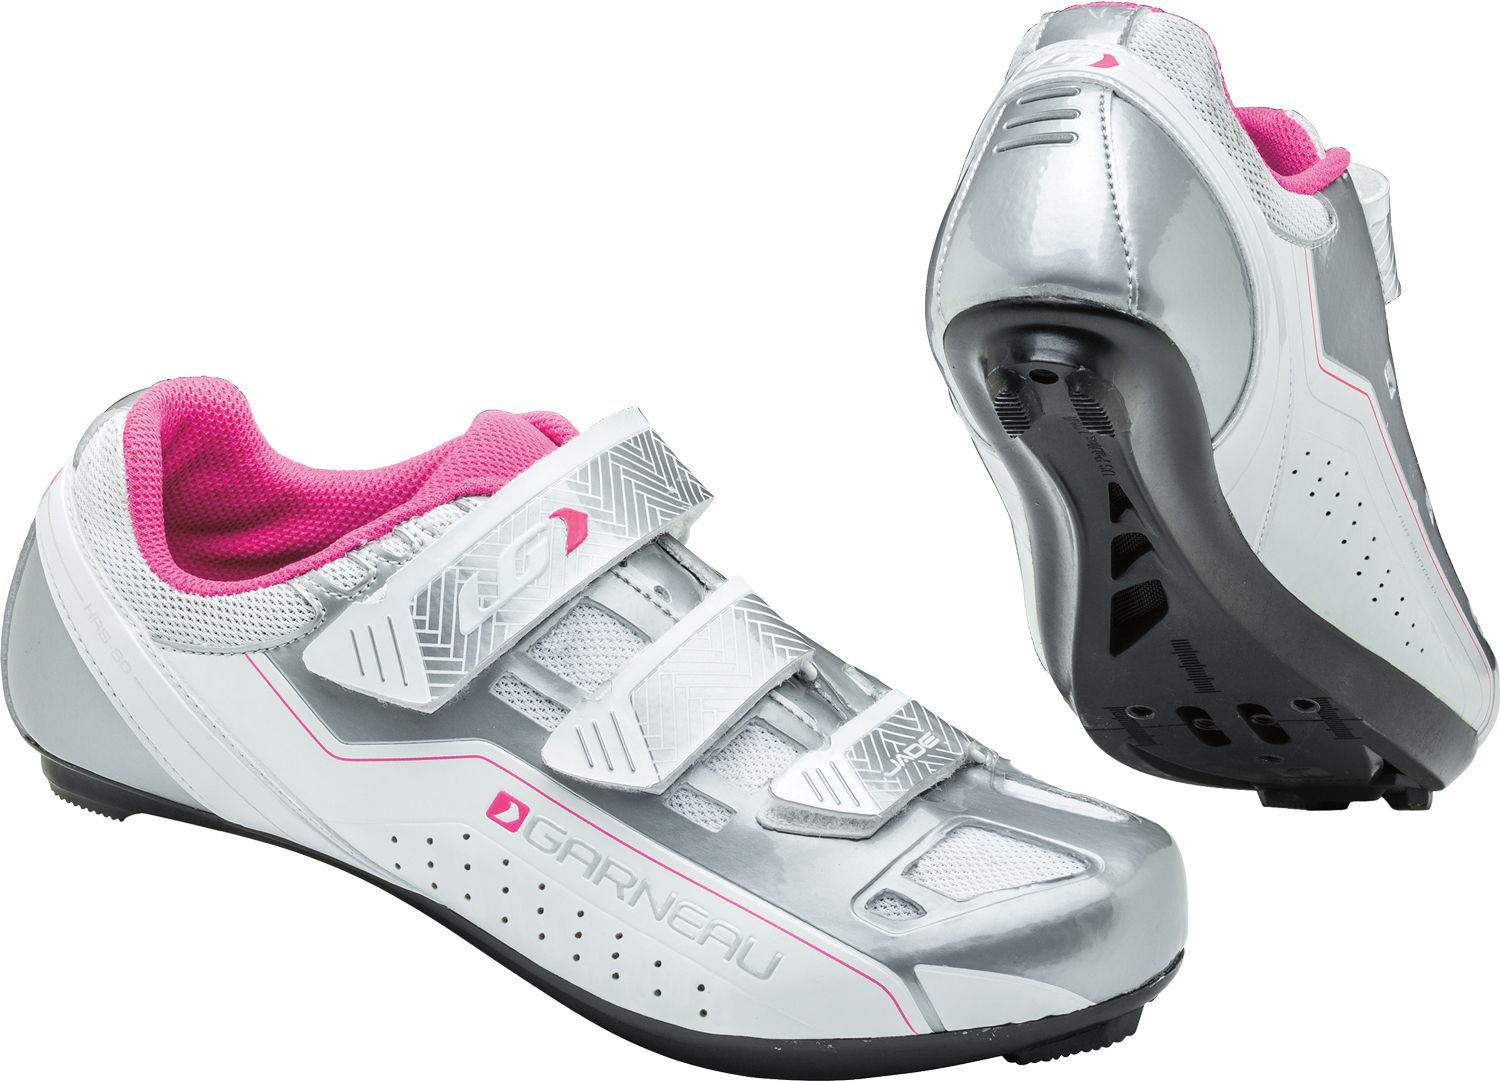 Beautiful 43 Out Of 5 Stars With 6 Reviews For Five Ten Freerider Cycling Shoes  Womens Read Reviews 6 5 Out Of 5 Stars With 1 Reviews For Five Ten Freerider Pro Womens Shoes  Womens Read Reviews 1 Five Ten Freerider Pro Womens